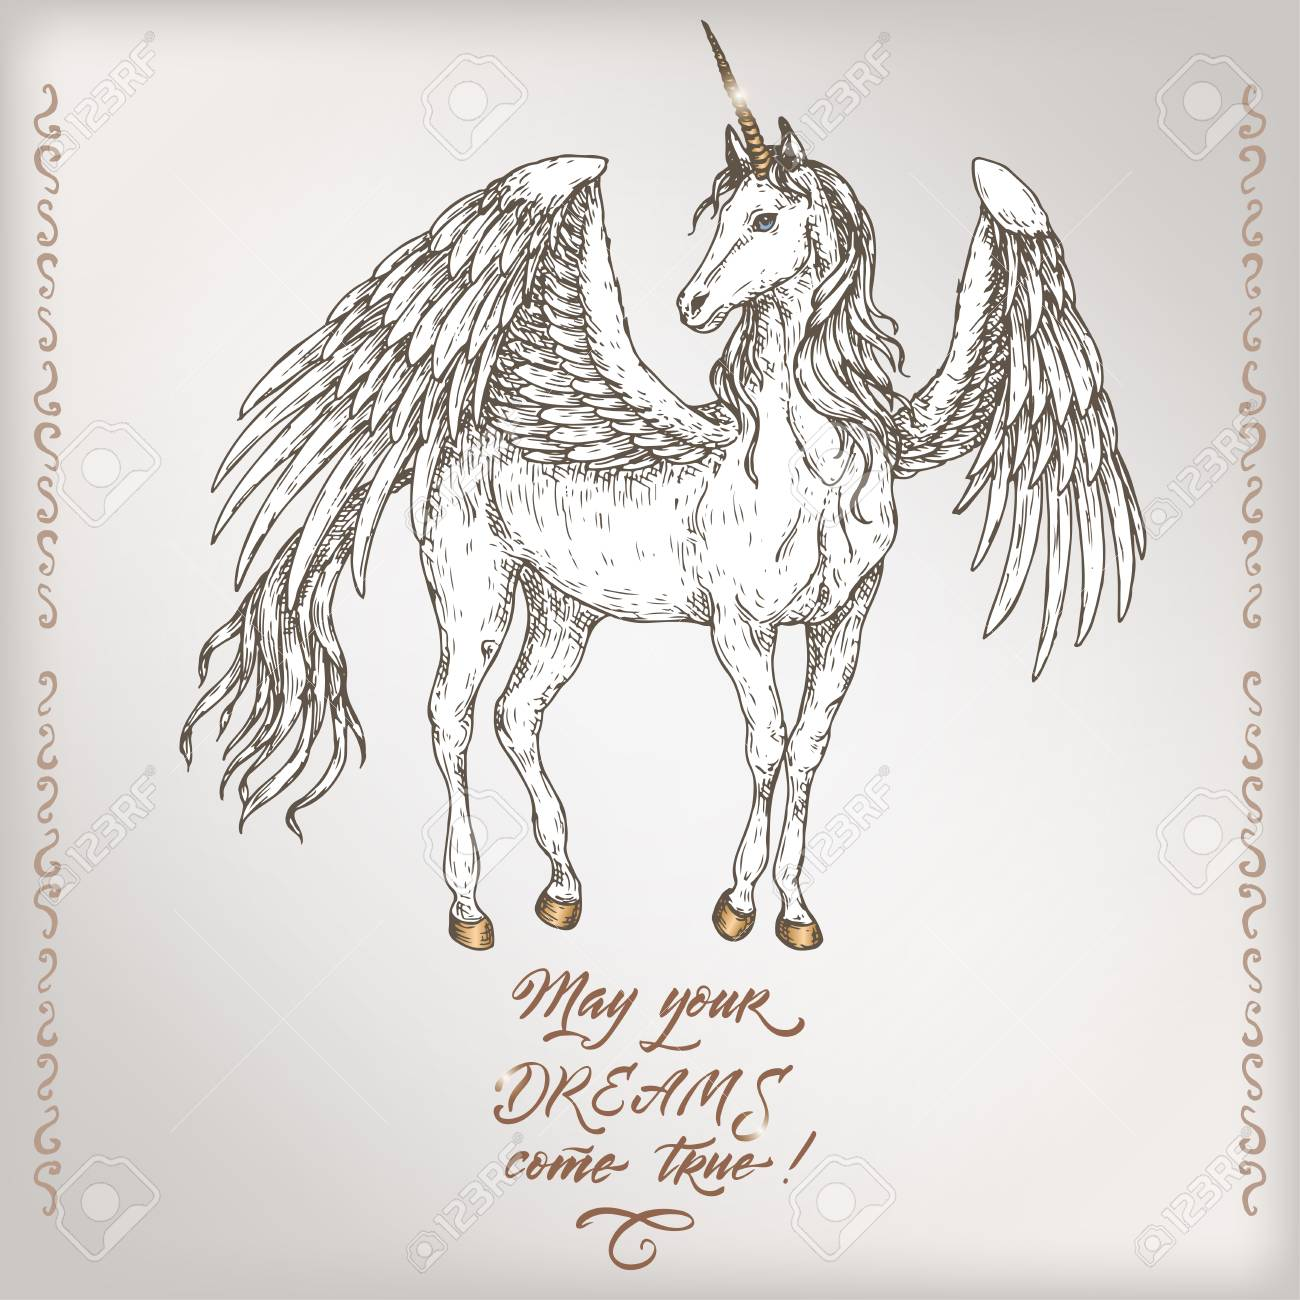 Romantic Vintage Birthday Card Template With Calligraphy And Winged Unicorn Sketch Stock Vector